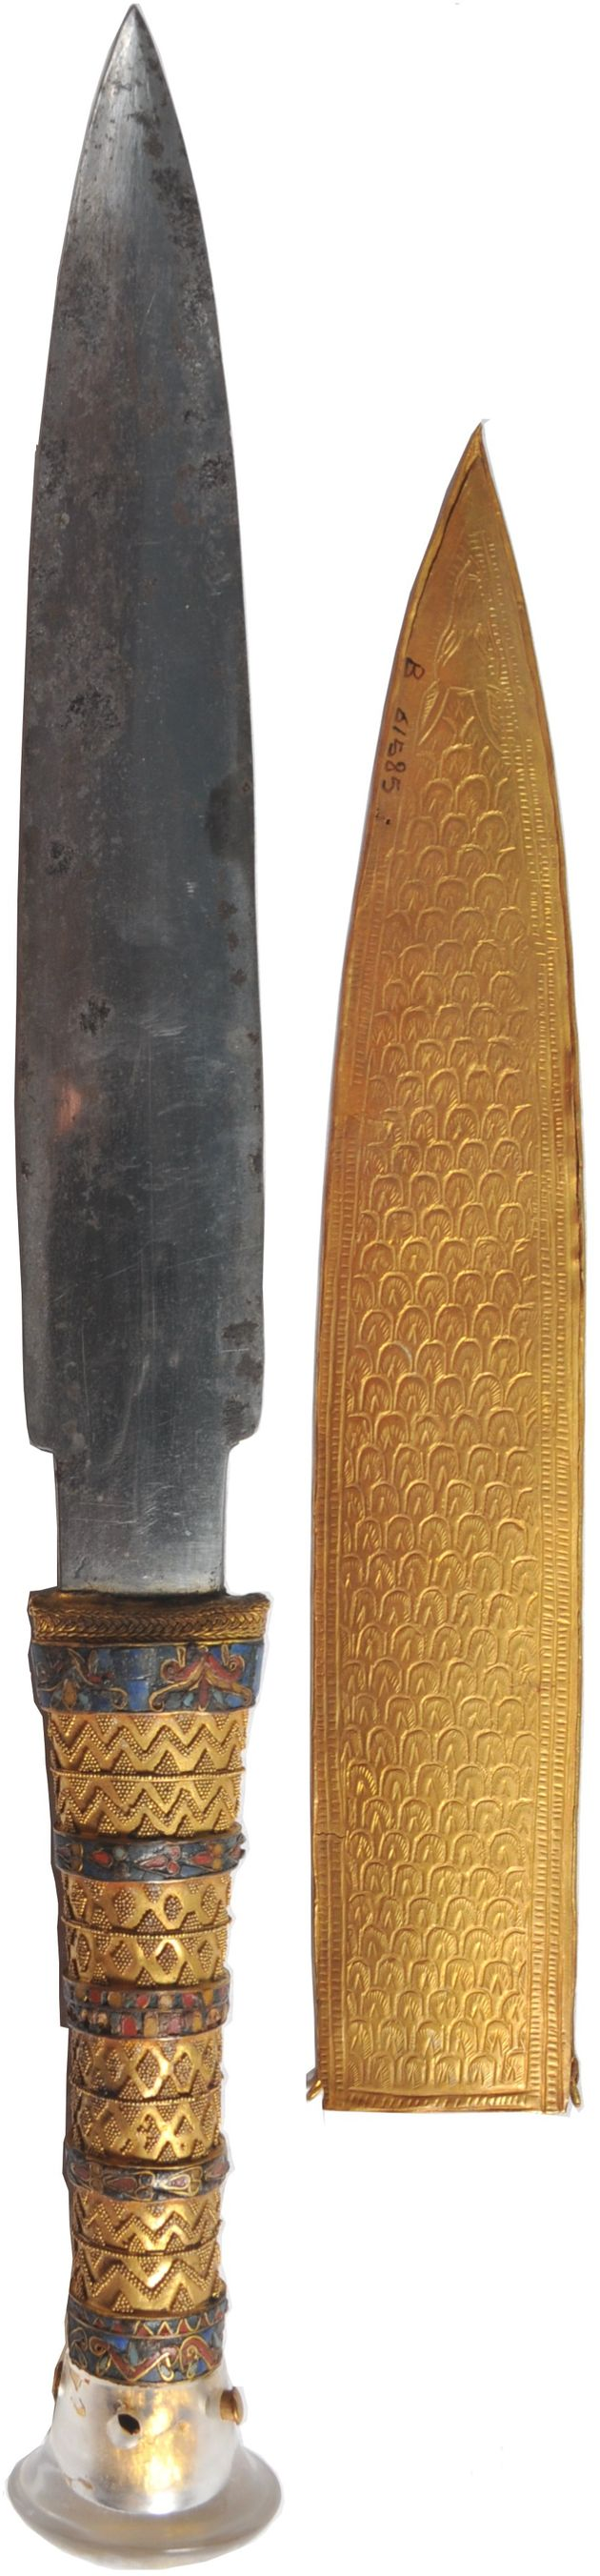 2nd June 2016. A dagger entombed alongside the mummy of Egyptian pharaoh Tutankhamun was made with iron that came from a meteorite, researchers say. The origin of its unrusted iron blade has baffled scientists because such metalwork was rare in ancient Egypt.